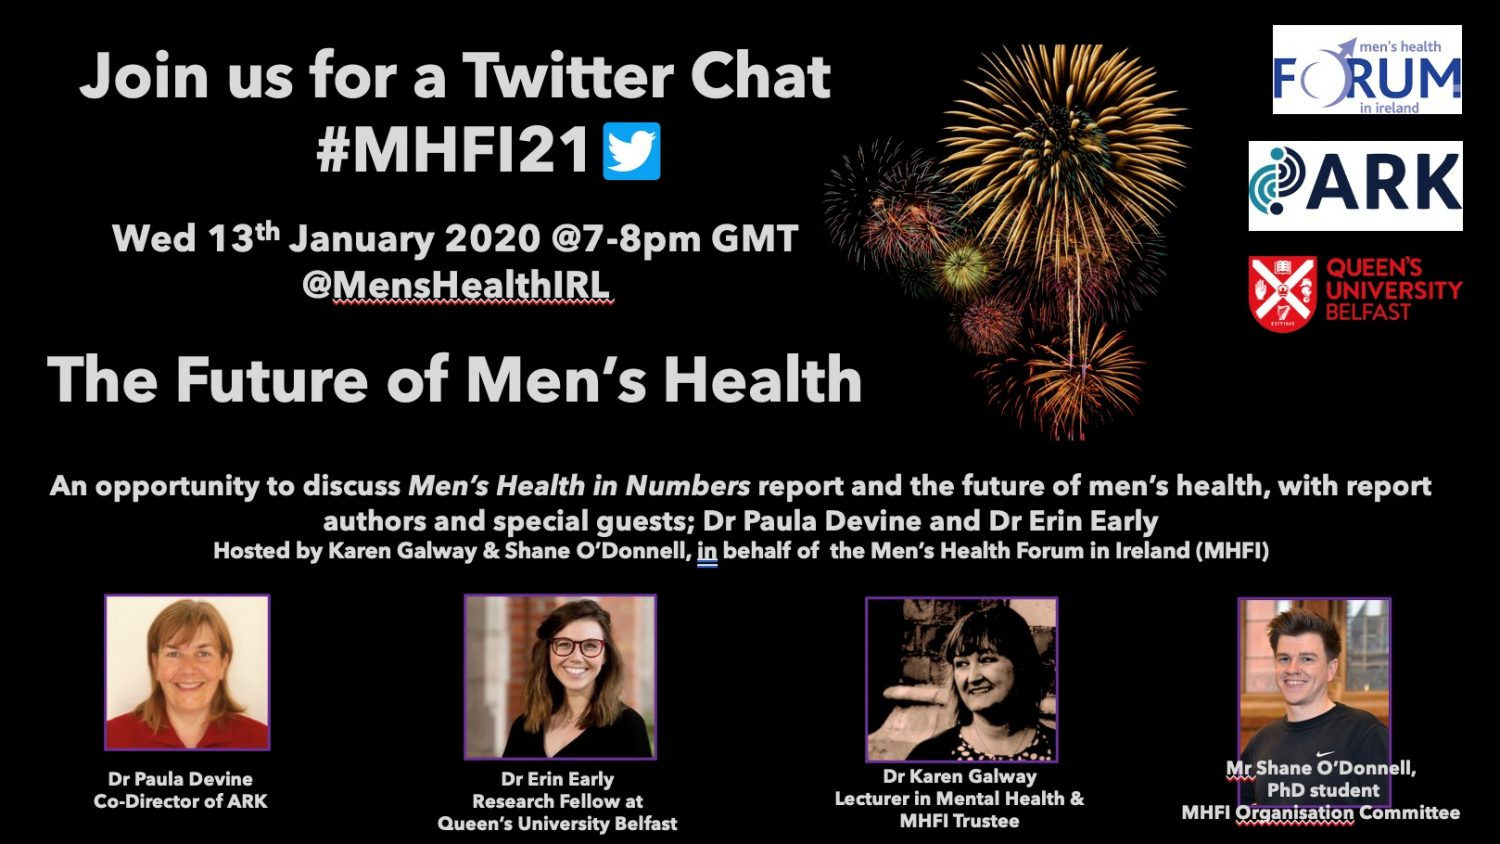 Men's Health Forum in Ireland launches key report for their 21st Birthday